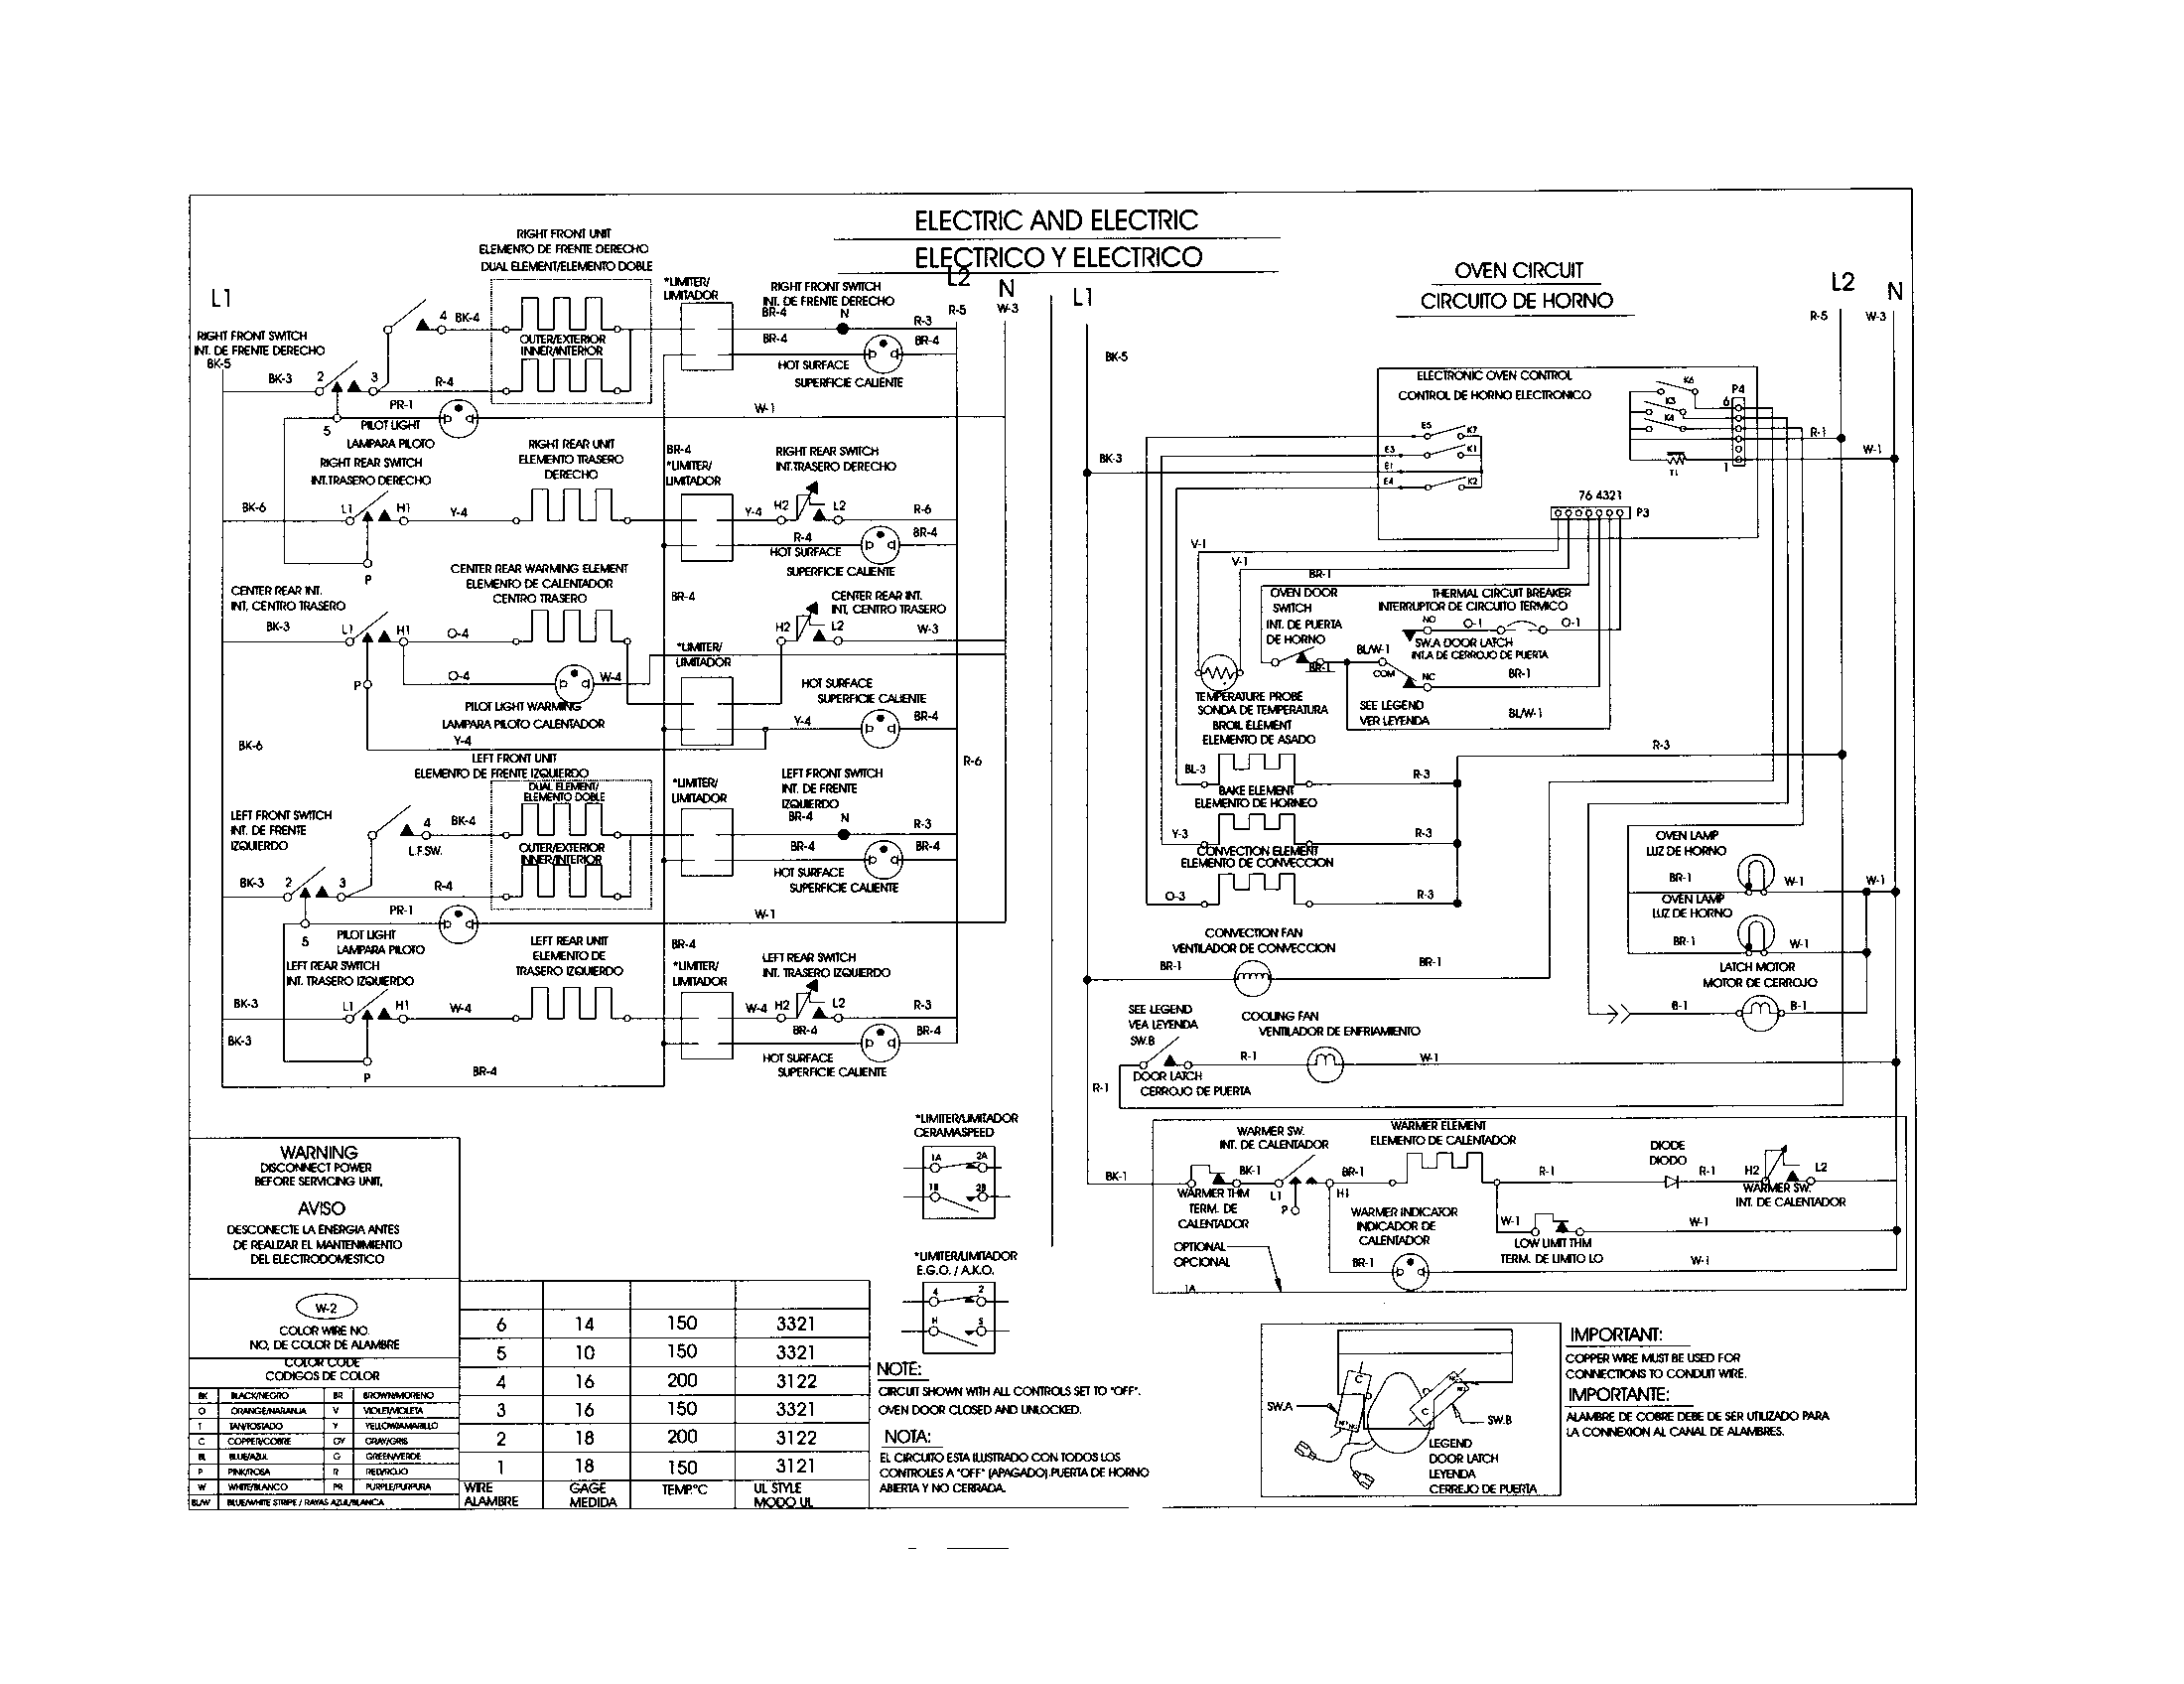 wiring parts kenmore electric range wiring diagram kenmore wiring diagrams  at aneh.co